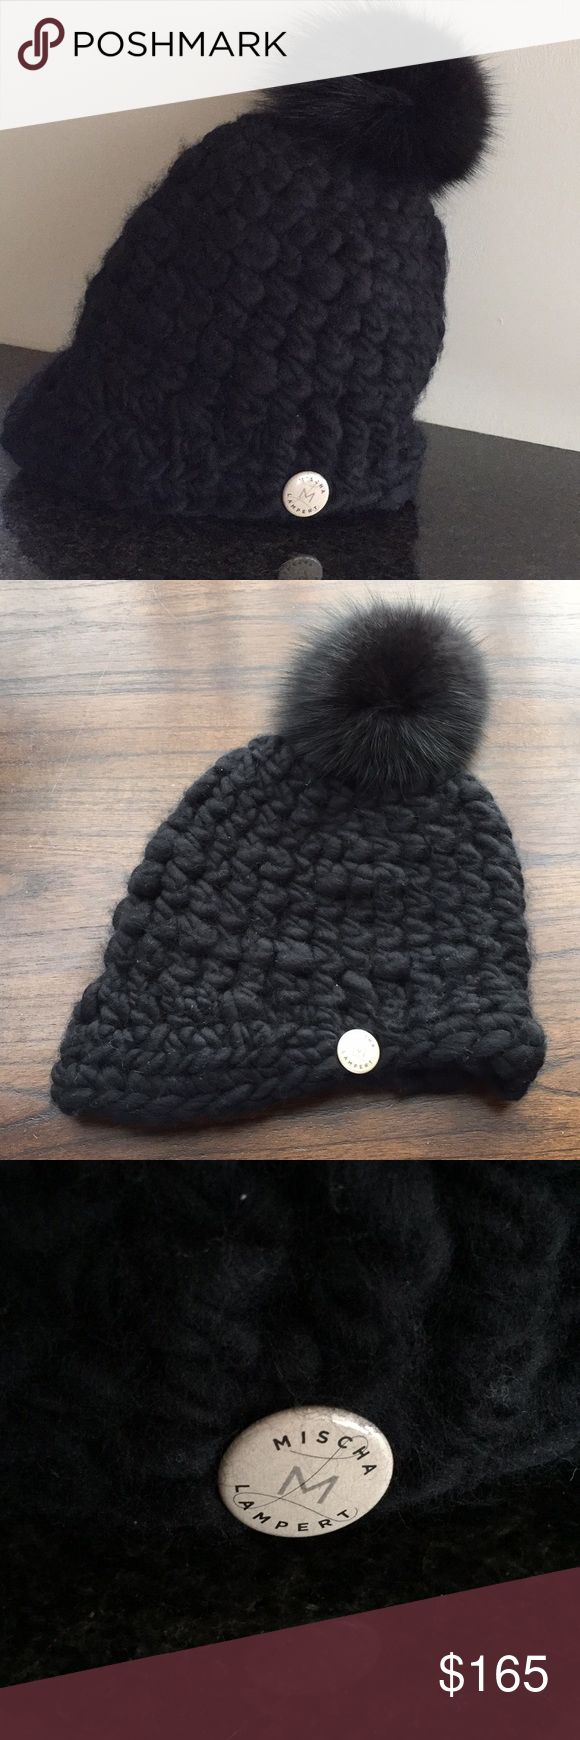 Mischa Lampert polo beanie Pom Pom hat New without tag. Polo beanie genuine fur pompom hat in chunky knit wool. Mischa Lampert Accessories Hats